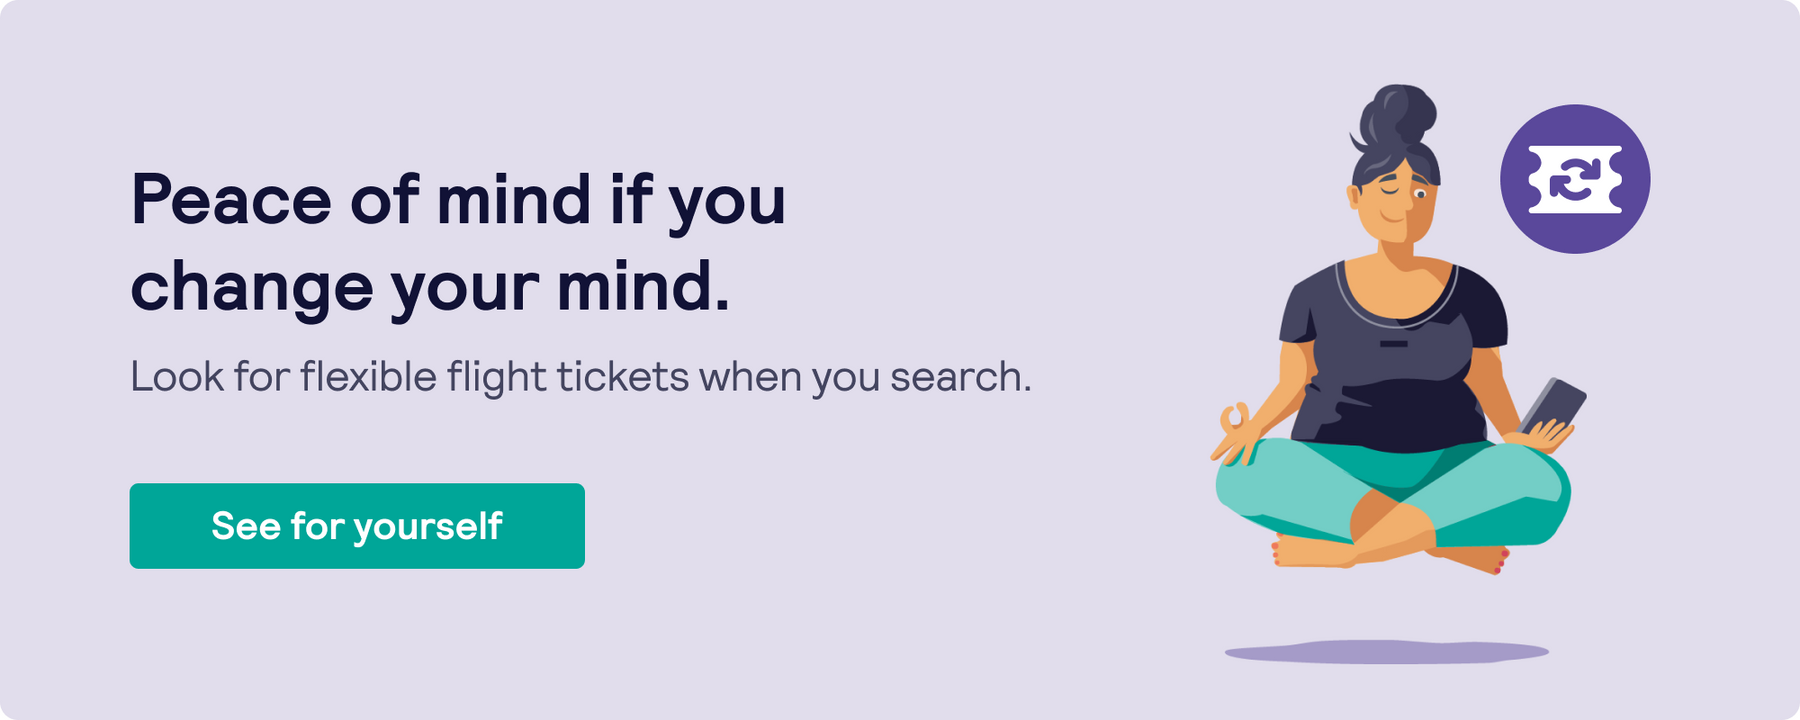 If you're worried about flight delays and cancellations you can look for flexible tickets when you search with Skyscanner